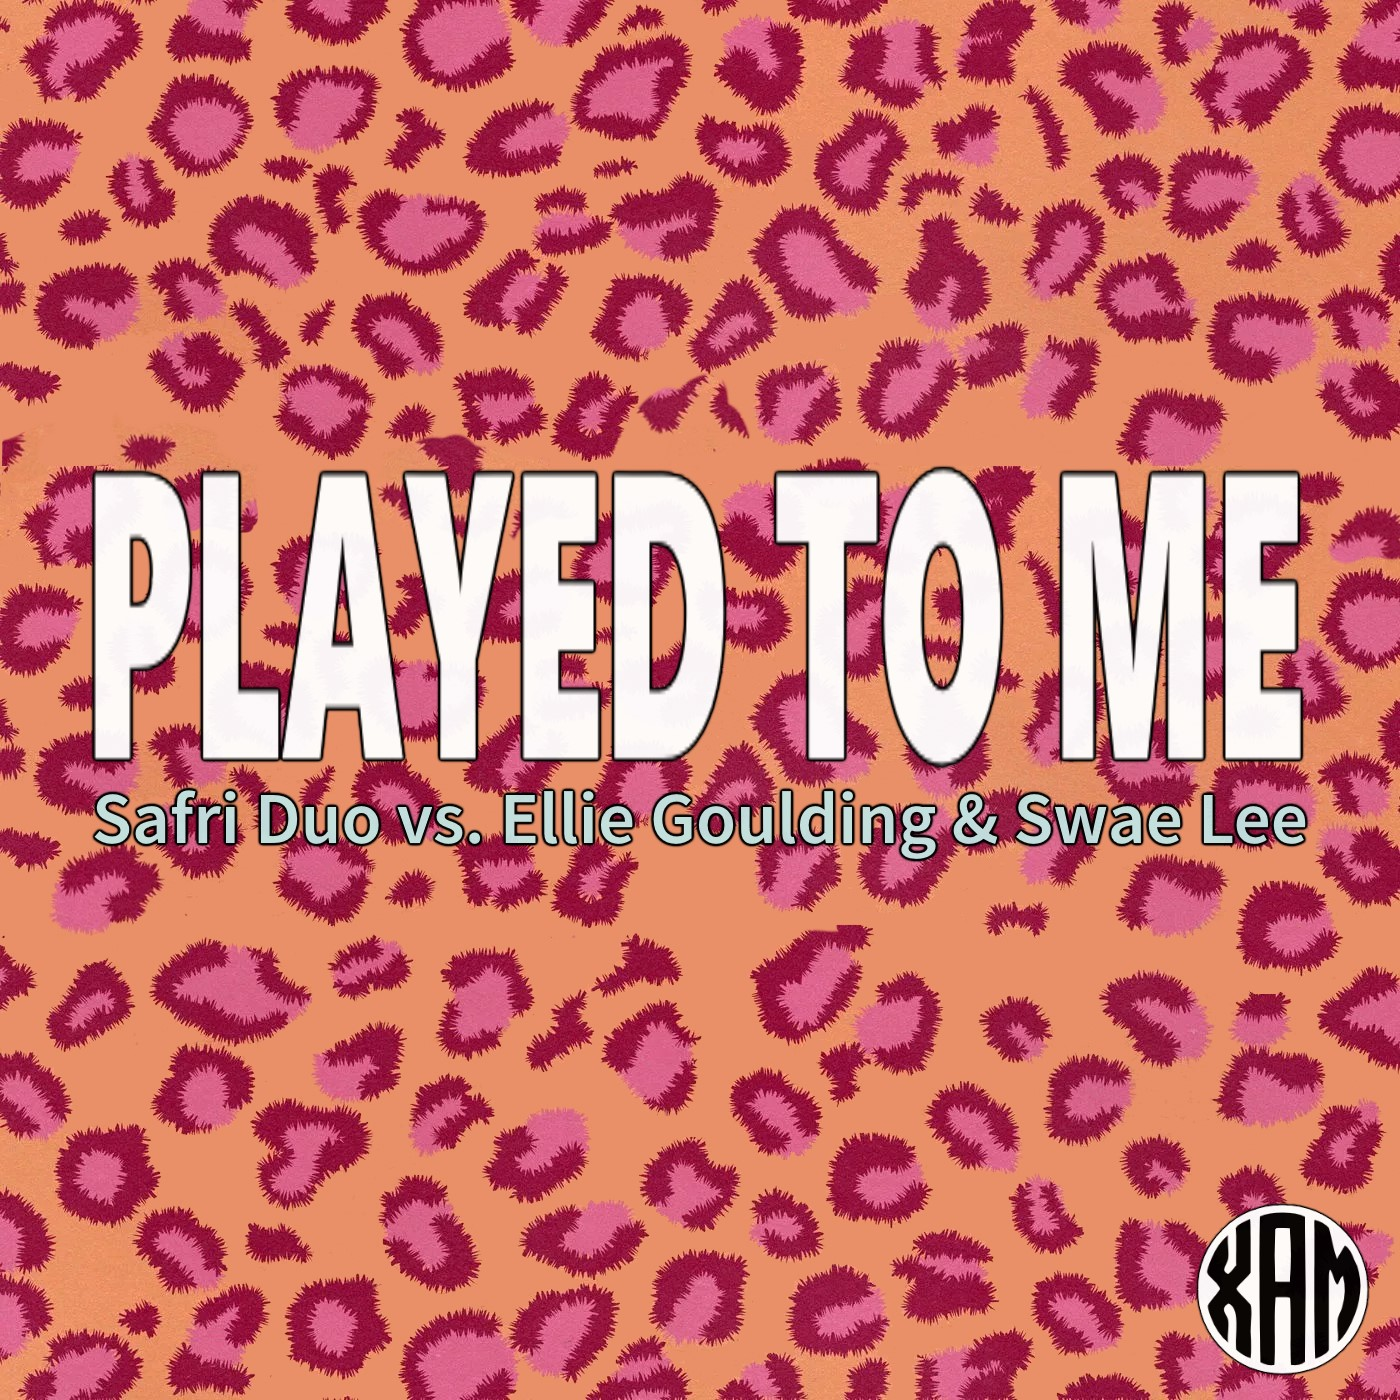 Xam - Played to Me (Safri Duo vs. Ellie Goulding & Swae Lee)